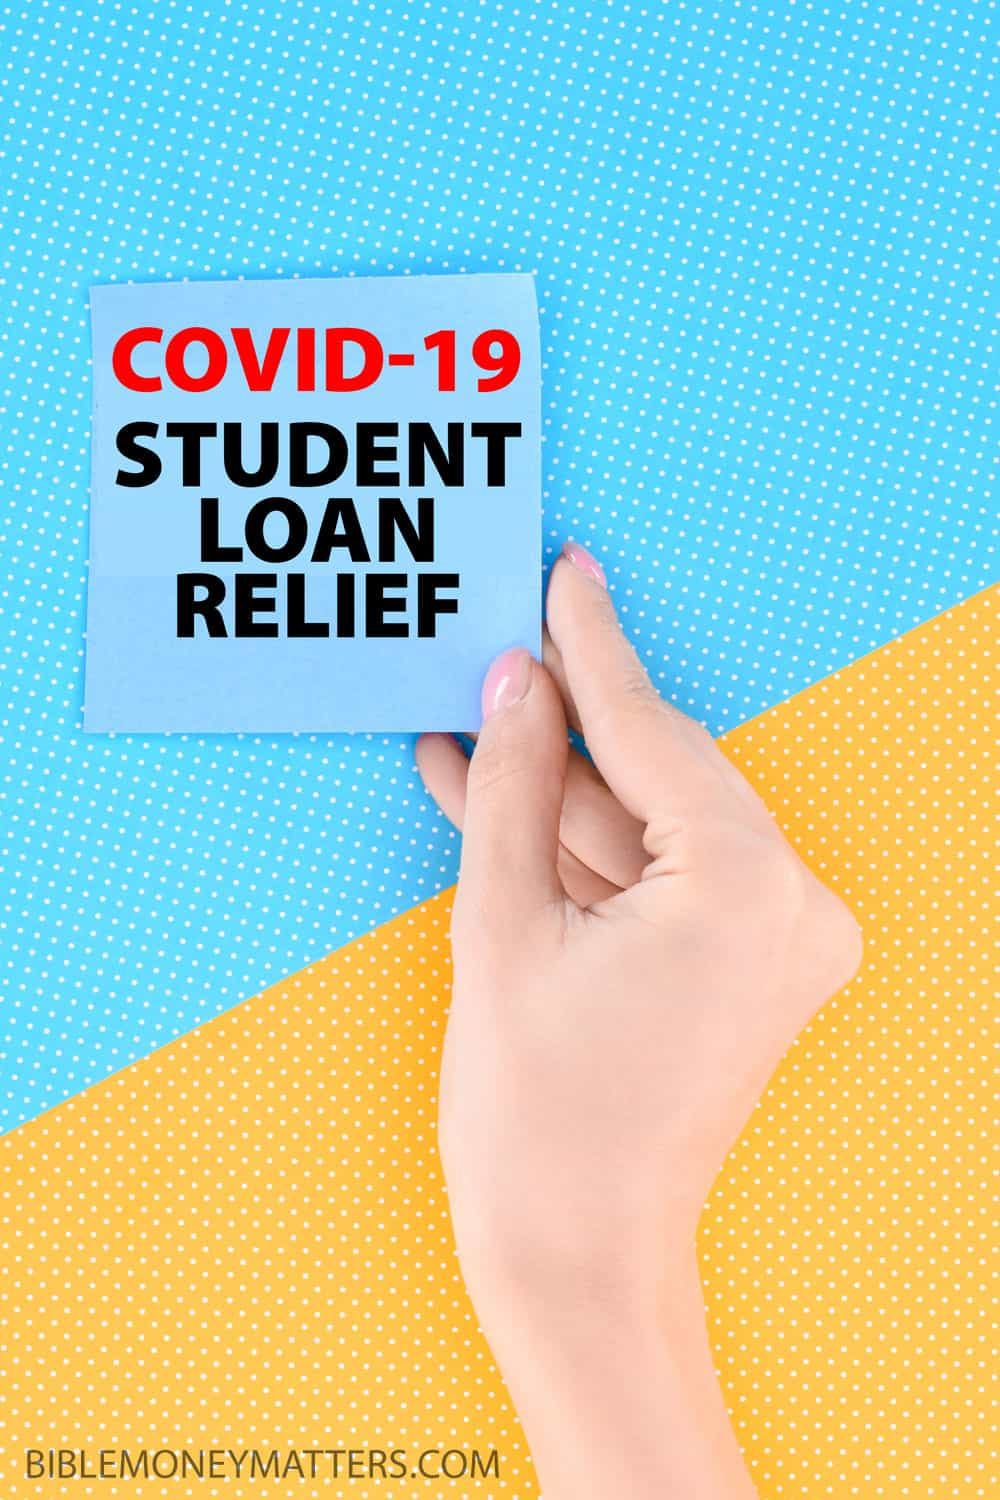 COVID-19 Student Loan Relief Programs